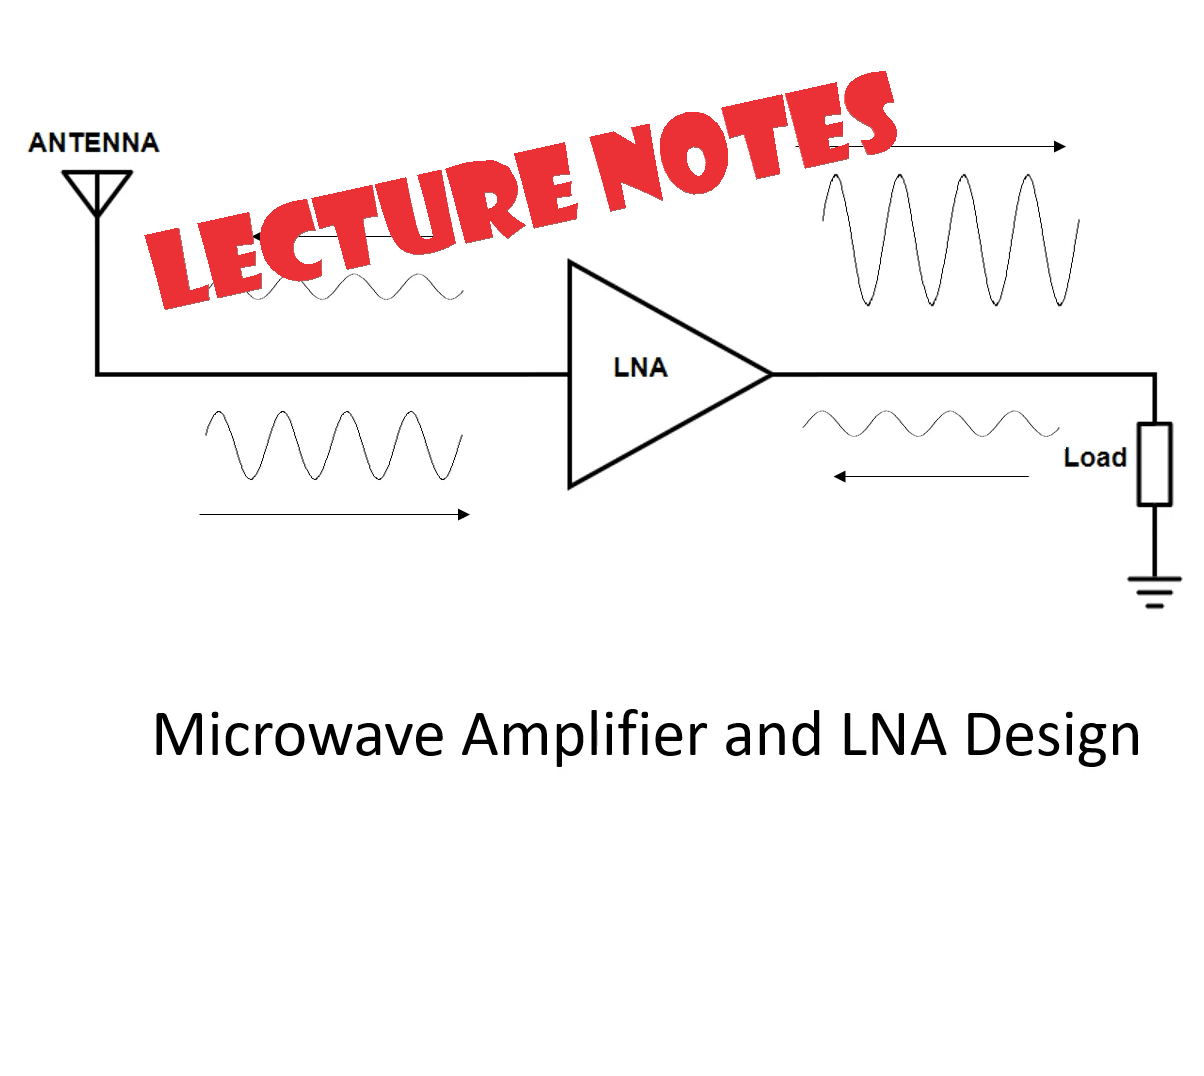 RAHRF526 Lecture Notes and ADS Source Files: Microwave Amplifier and Low  Noise Amplifier (LNA) Design Theory and Principles online course